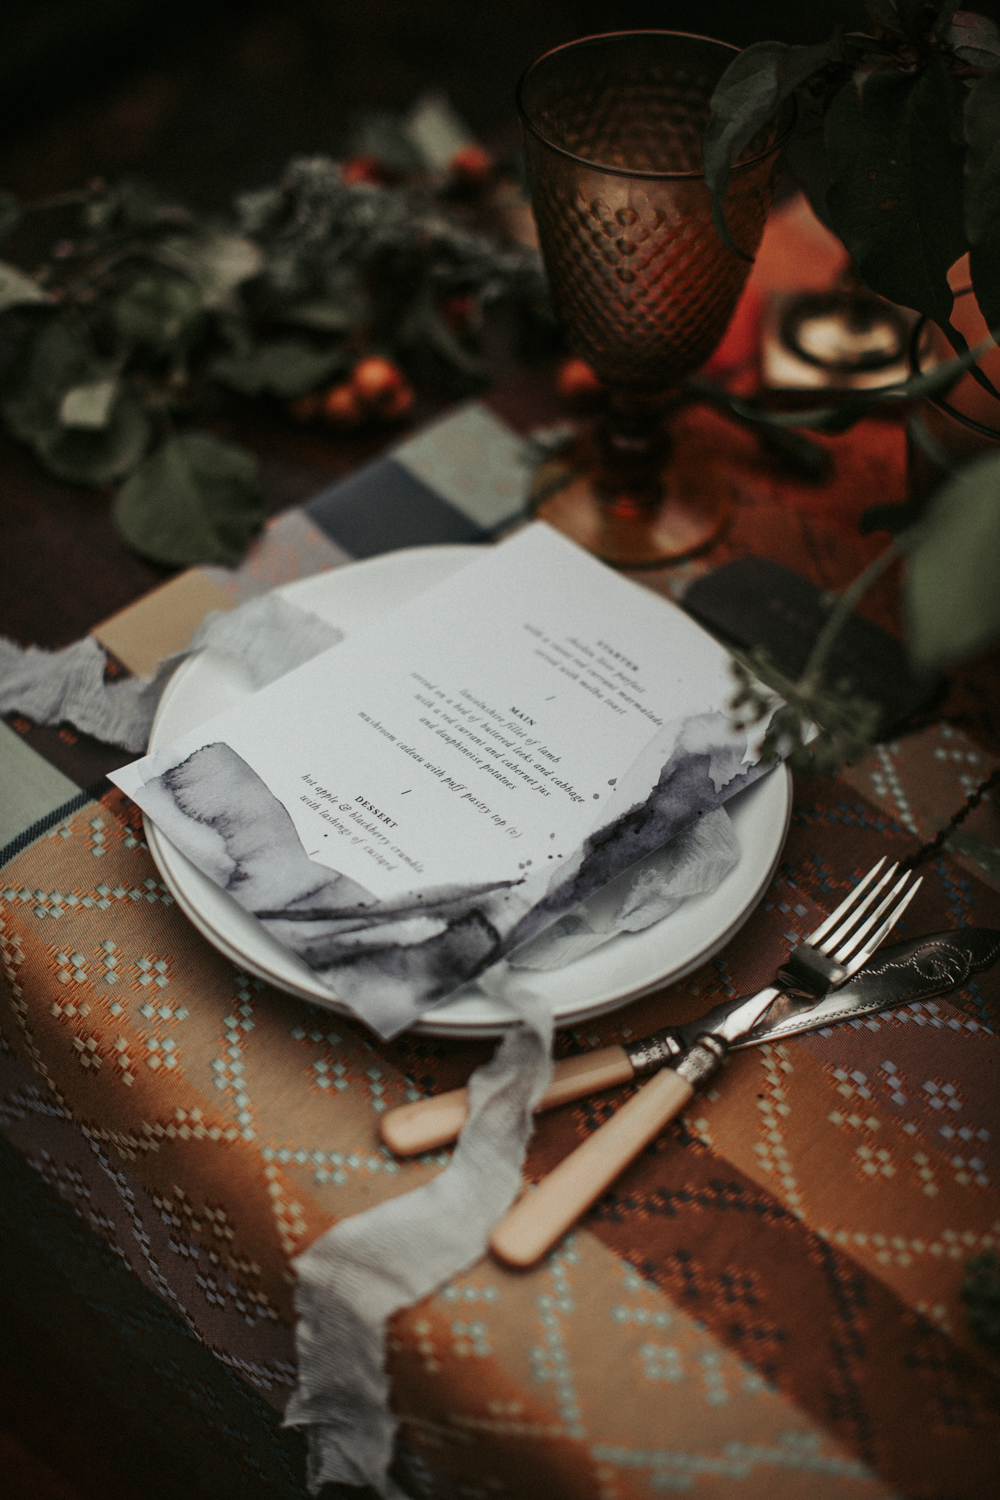 Ombre menus and airy ribbon added chic to the table